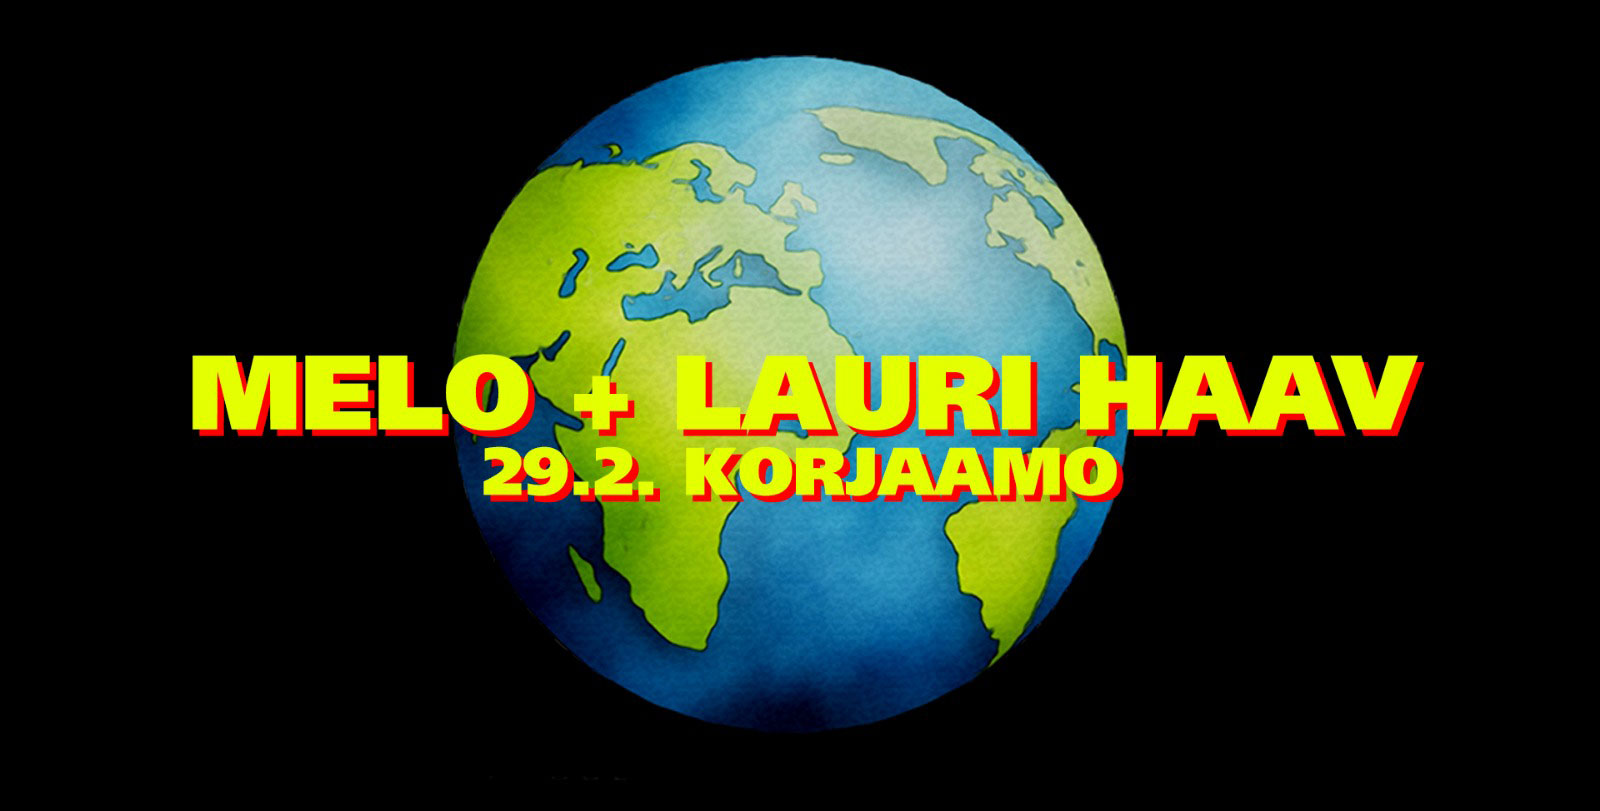 Link to event Melo, Lauri Haav